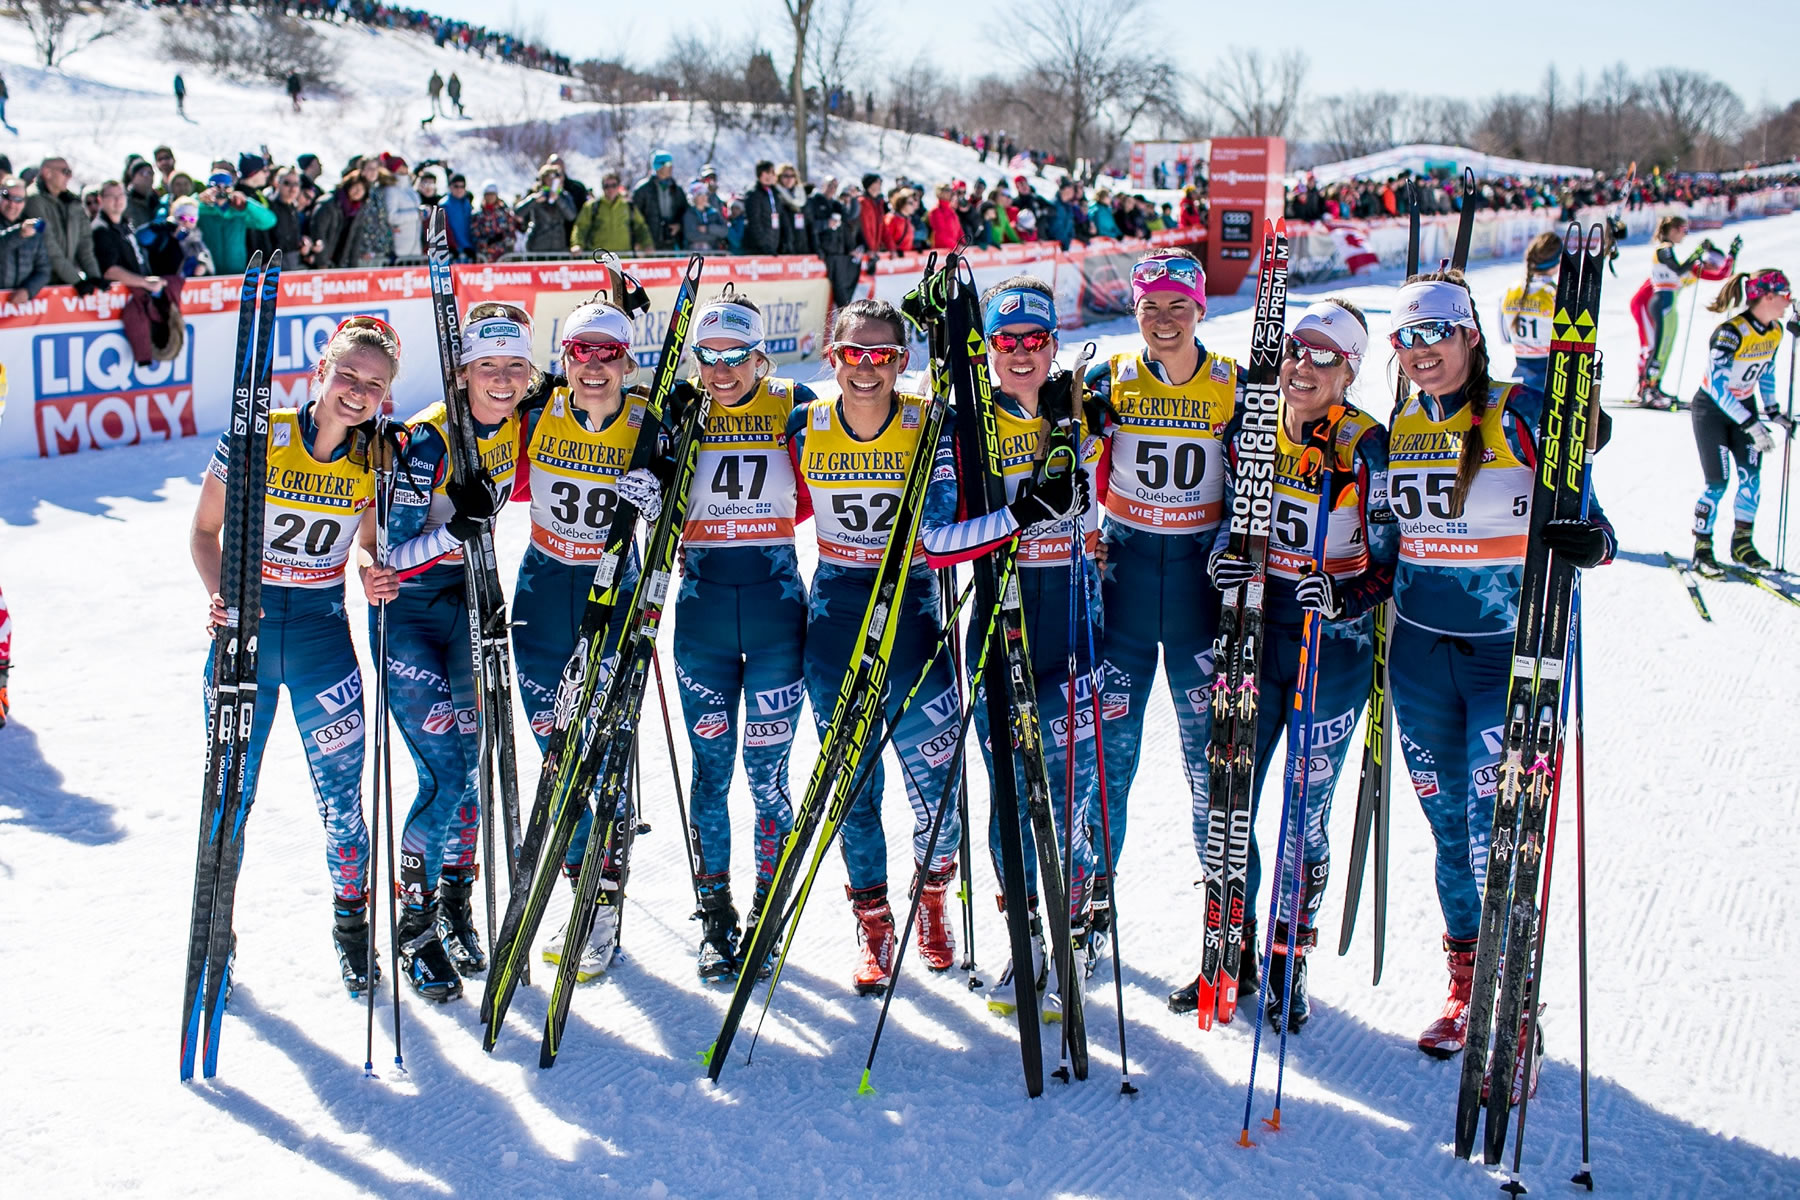 Much of the U.S. girls squad. [Photo] Gretchen Powers